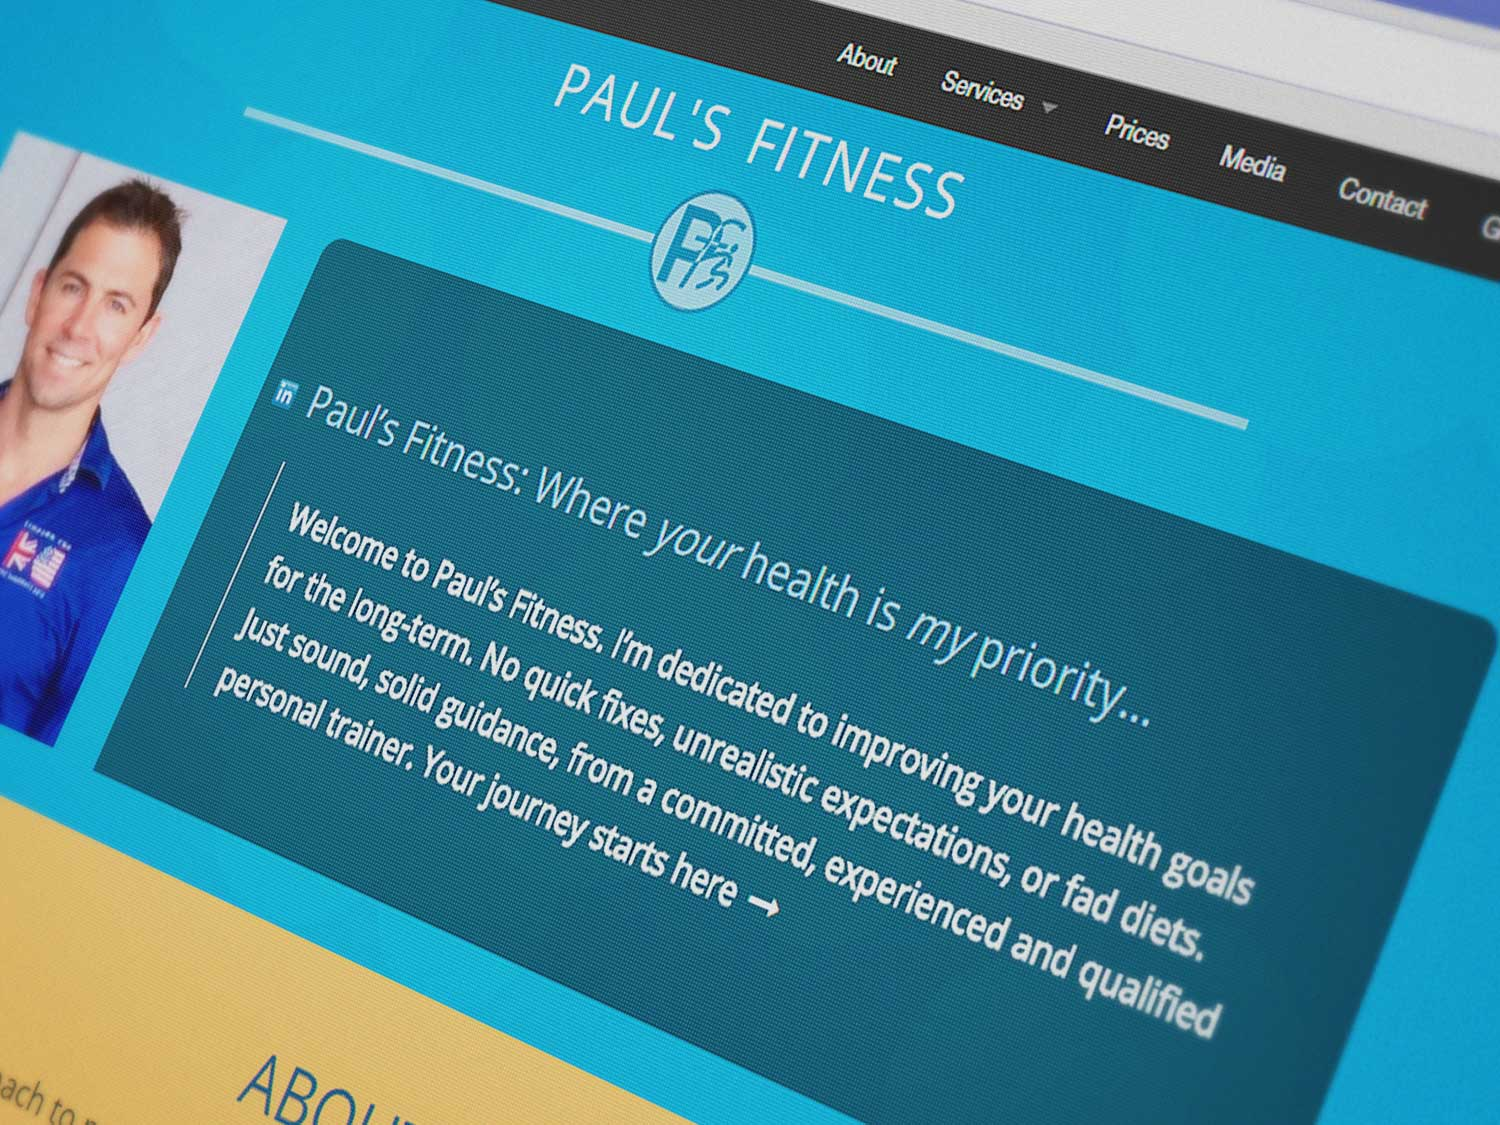 Paul's Fitness personal trainer website featuring Skype Fitness